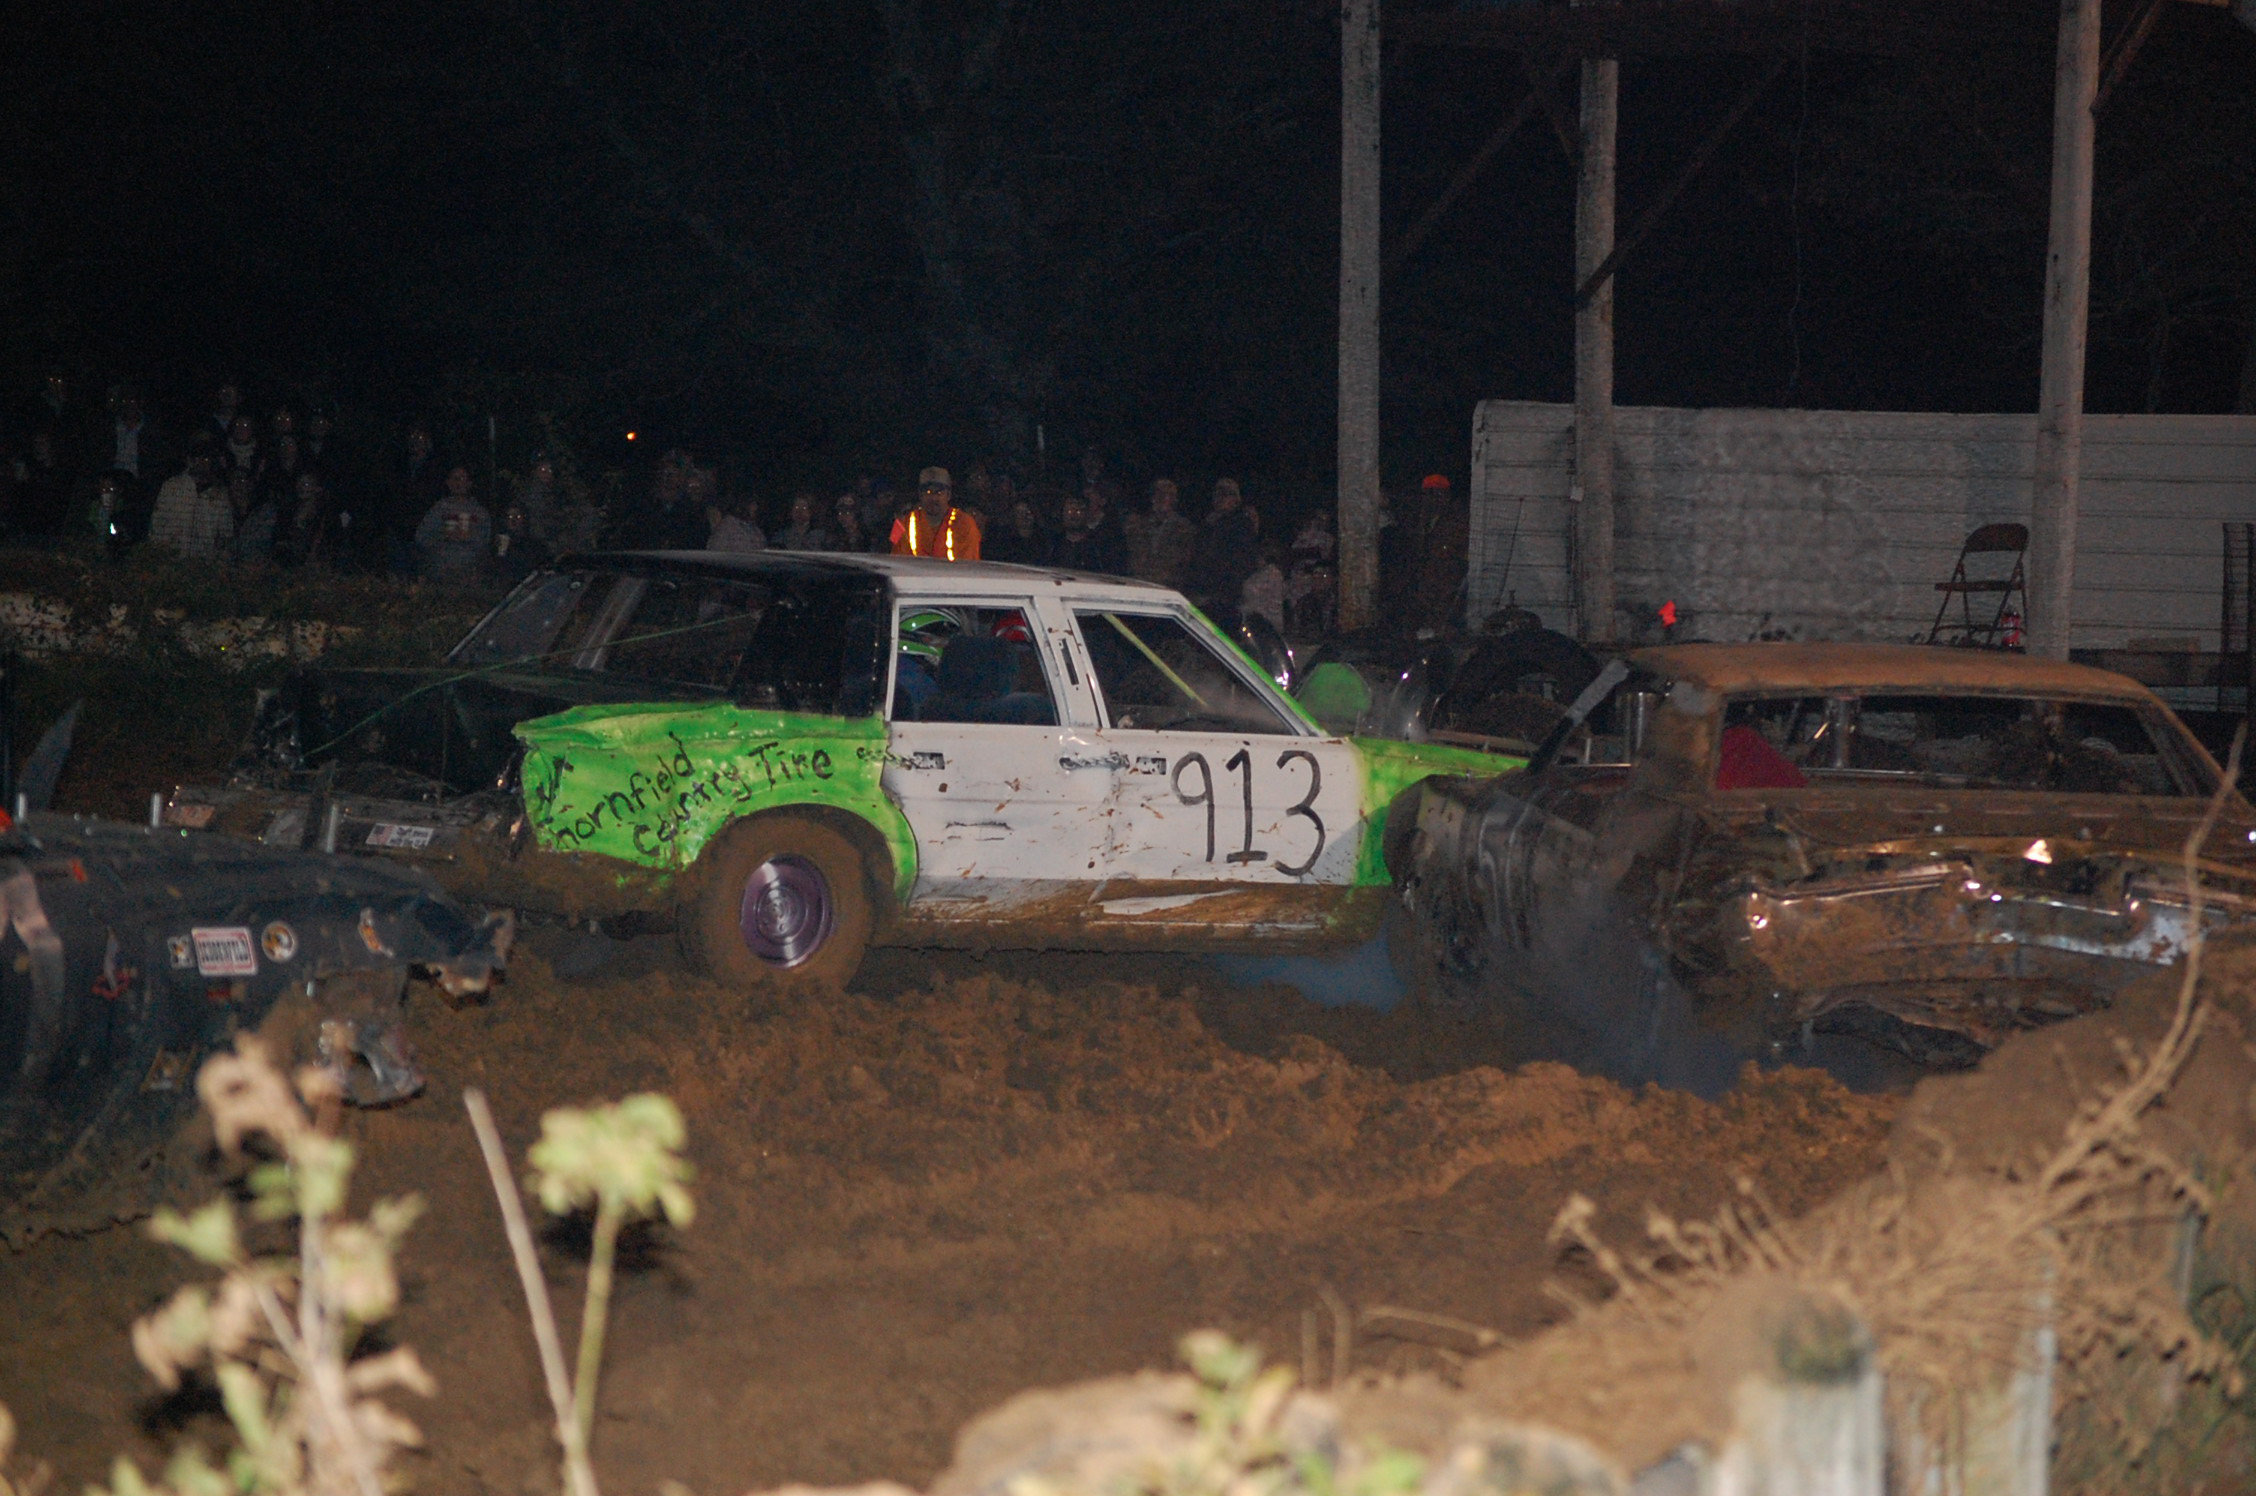 Demolition derby cars mix it up in a preliminary heat race at the Douglas County Fairgrounds last Saturday night.